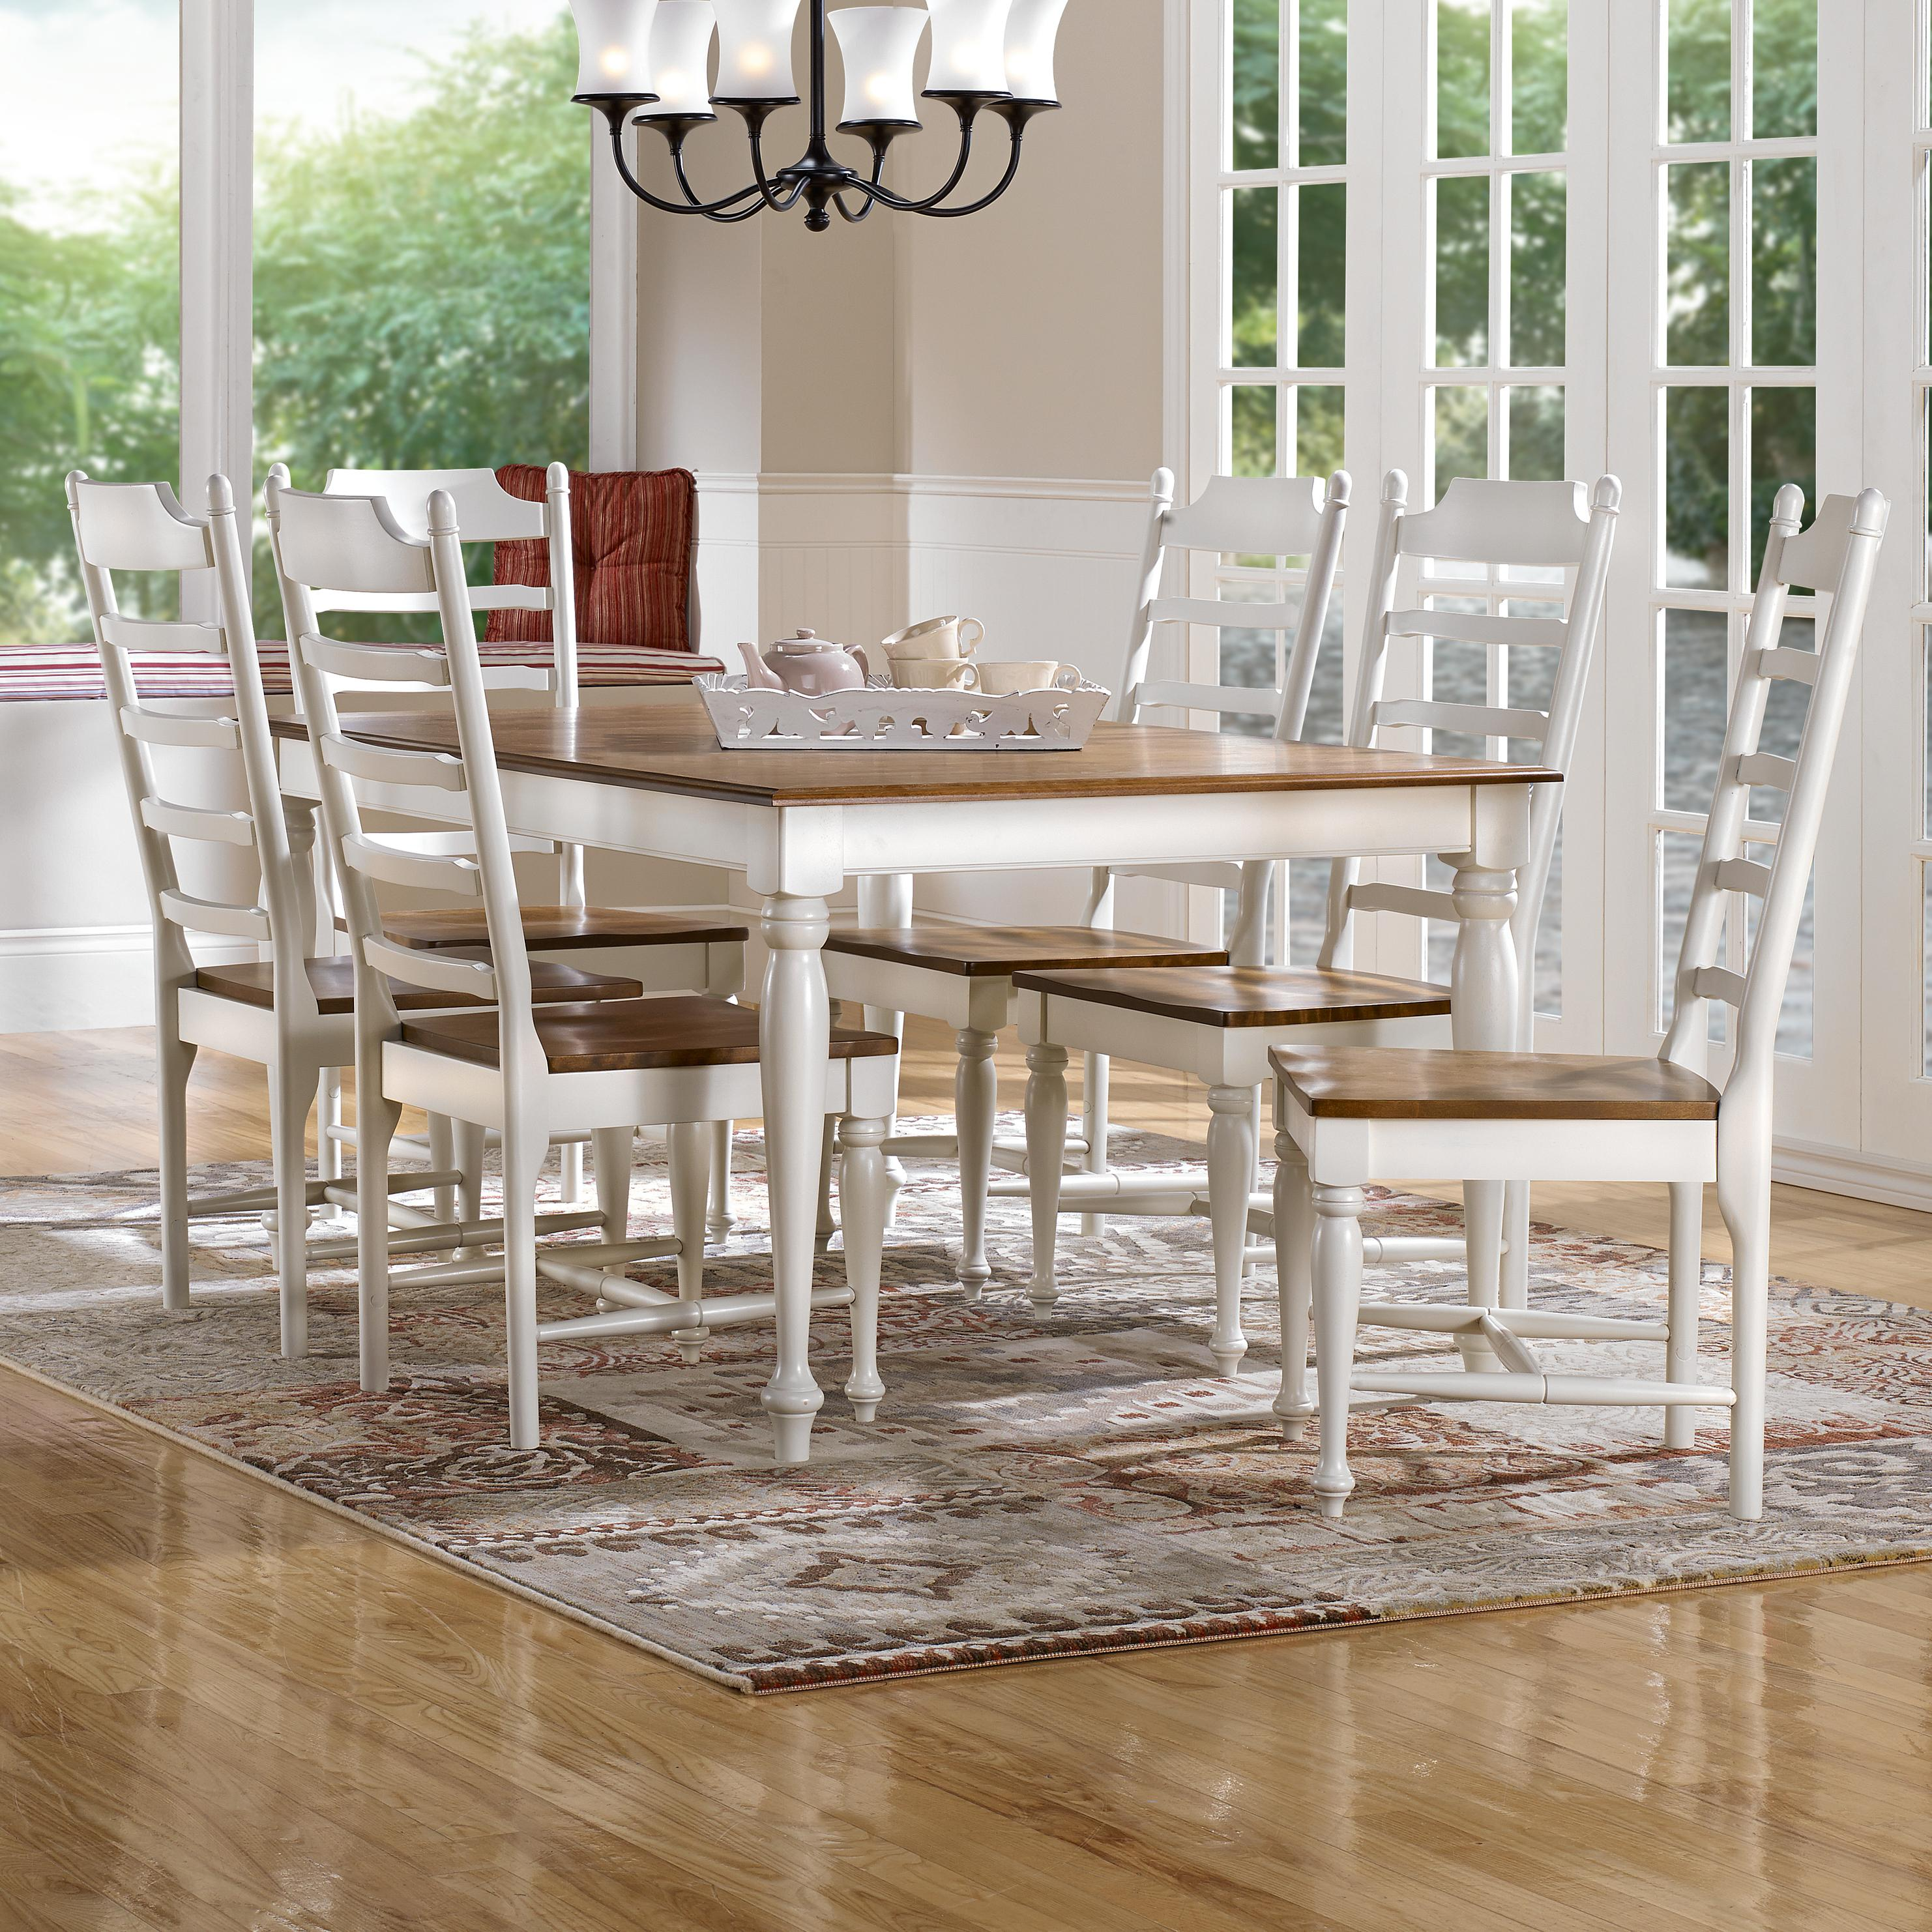 Canadel Gourmet - Custom Dining <b>Customizable</b> Rectangular Table Set - Item Number: TRE04262+6xCHA09001